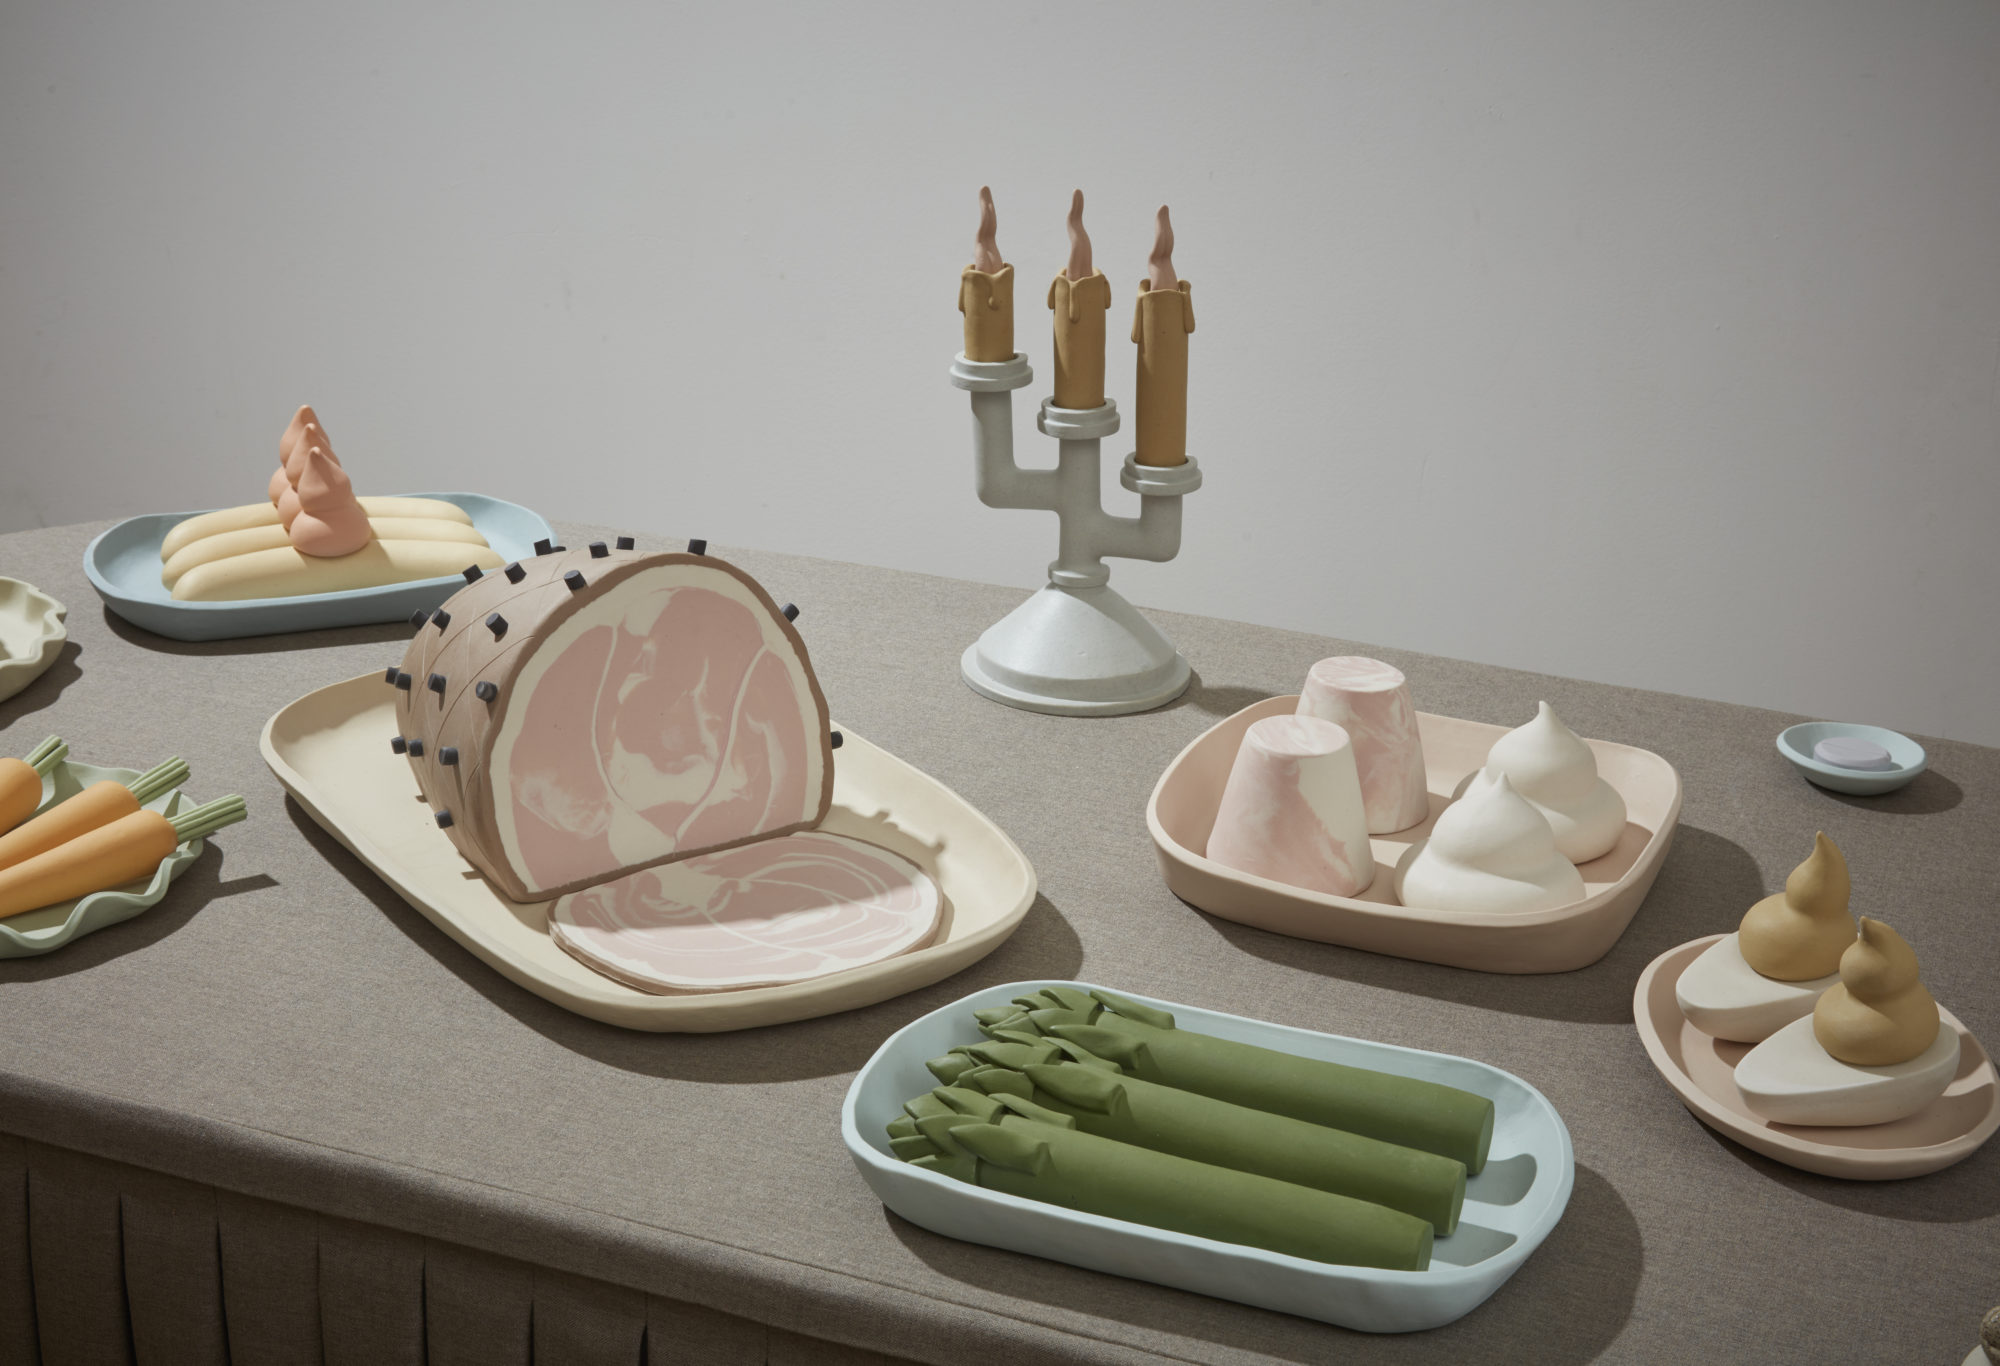 Small sculptural food items arranged on a gray table